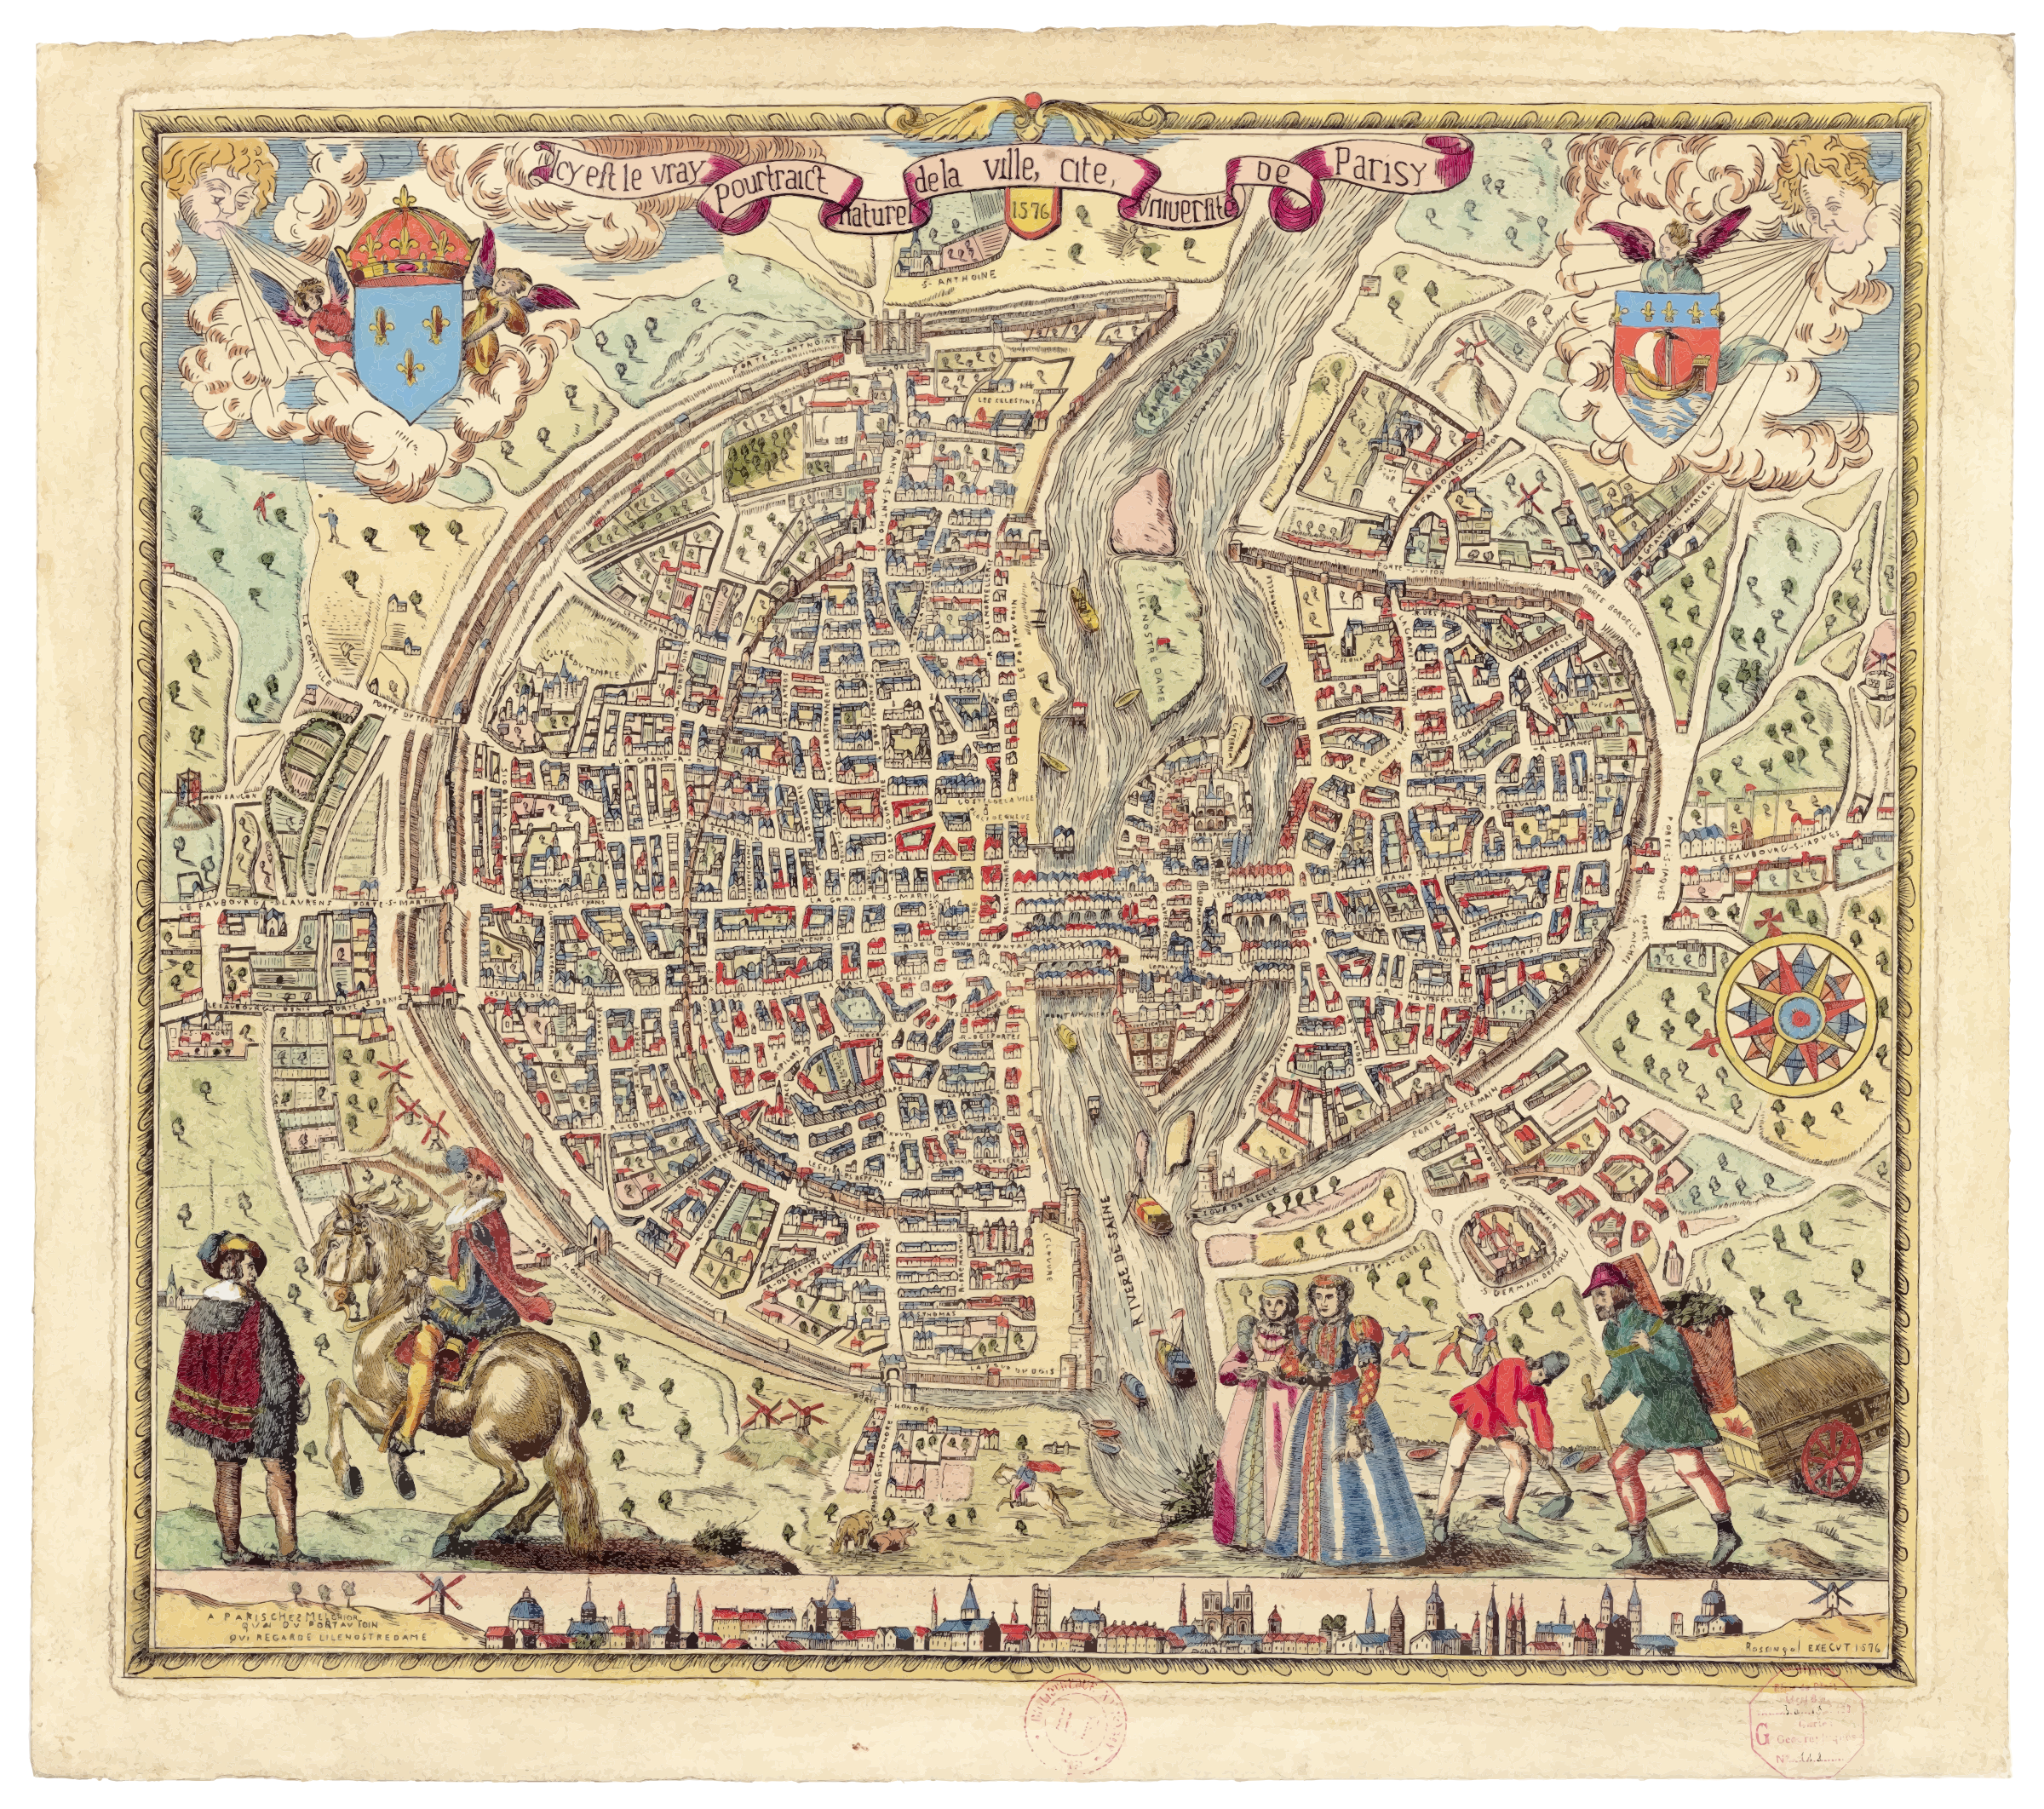 Map of Paris 1576 (Don't view in your browser, will crash) by GDJ